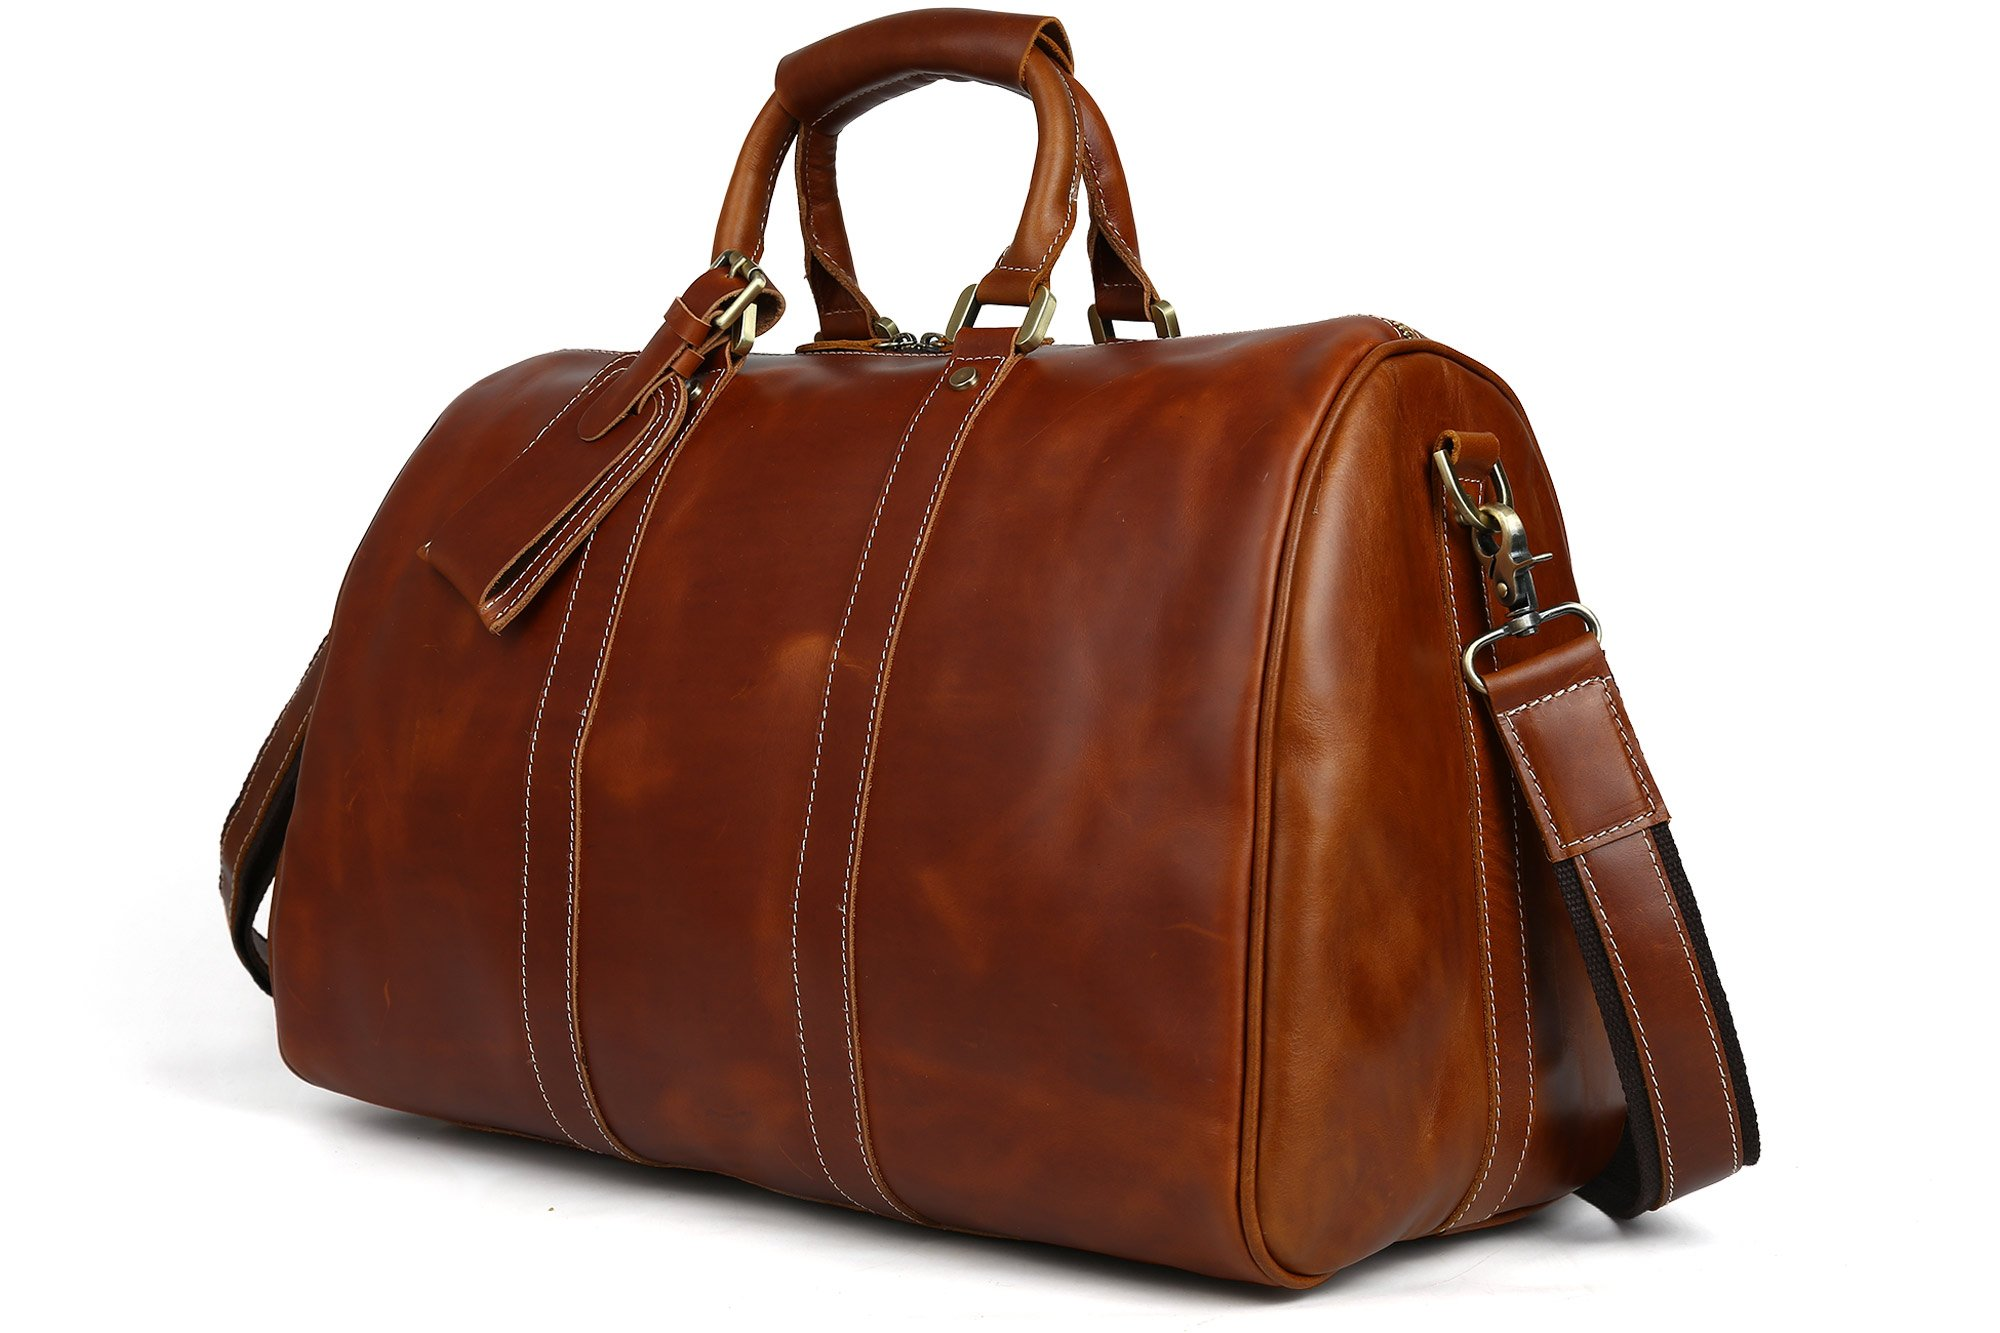 SUNVP Mens Genuine Leather Duffel Bag Vintage Overnight Travel Carry On Shoulder Crossbody Bags